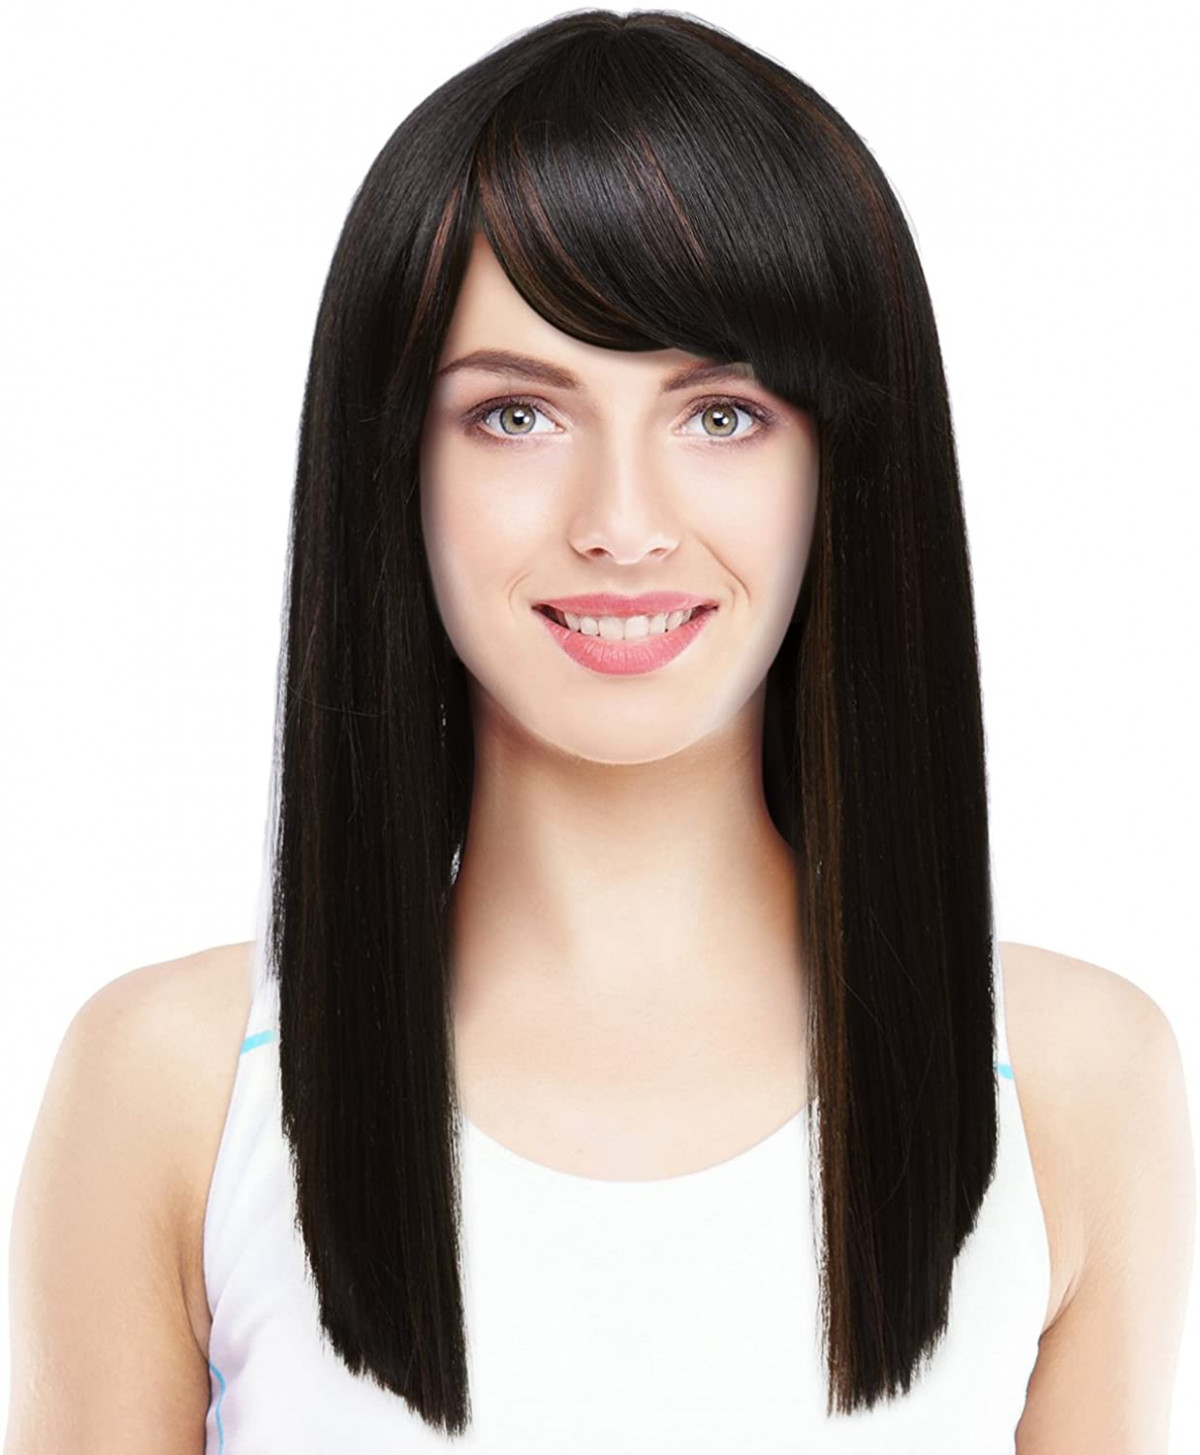 Silky straight wig with bangs natural looking medium length blunt cut synthetic full hair wig for women medium straight hair with bangs